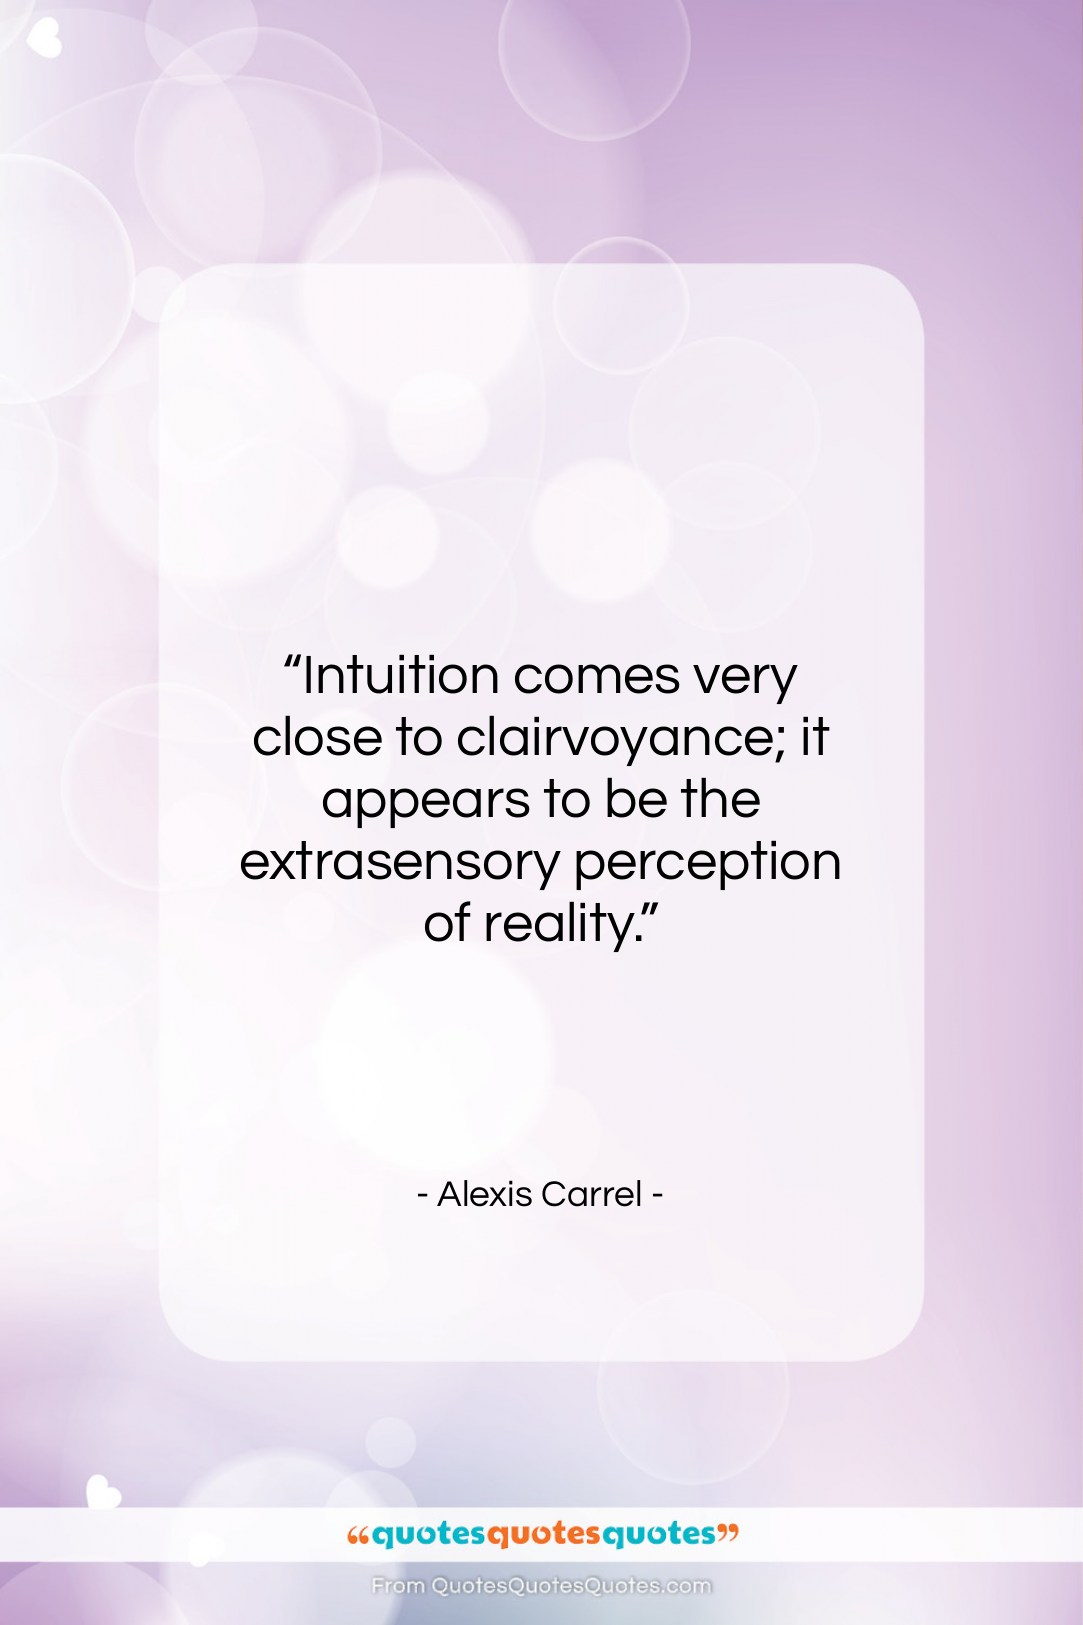 """Alexis Carrel quote: """"Intuition comes very close to clairvoyance; it…""""- at QuotesQuotesQuotes.com"""